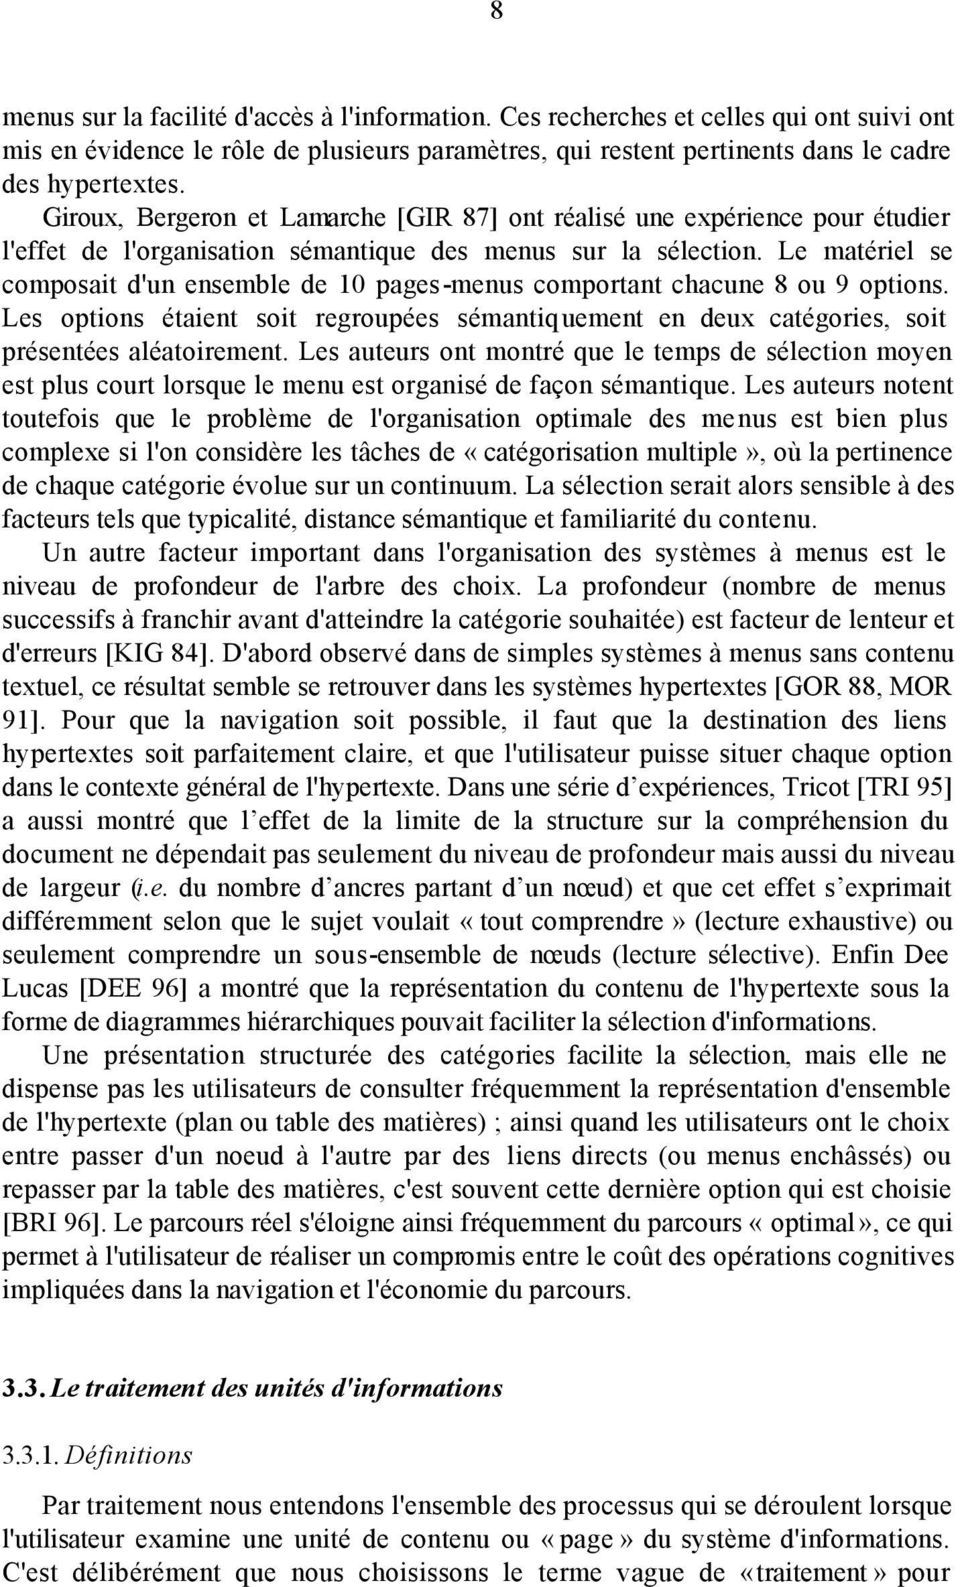 Le matériel se composait d'un ensemble de 10 pages-menus comportant chacune 8 ou 9 options. Les options étaient soit regroupées sémantiquement en deux catégories, soit présentées aléatoirement.